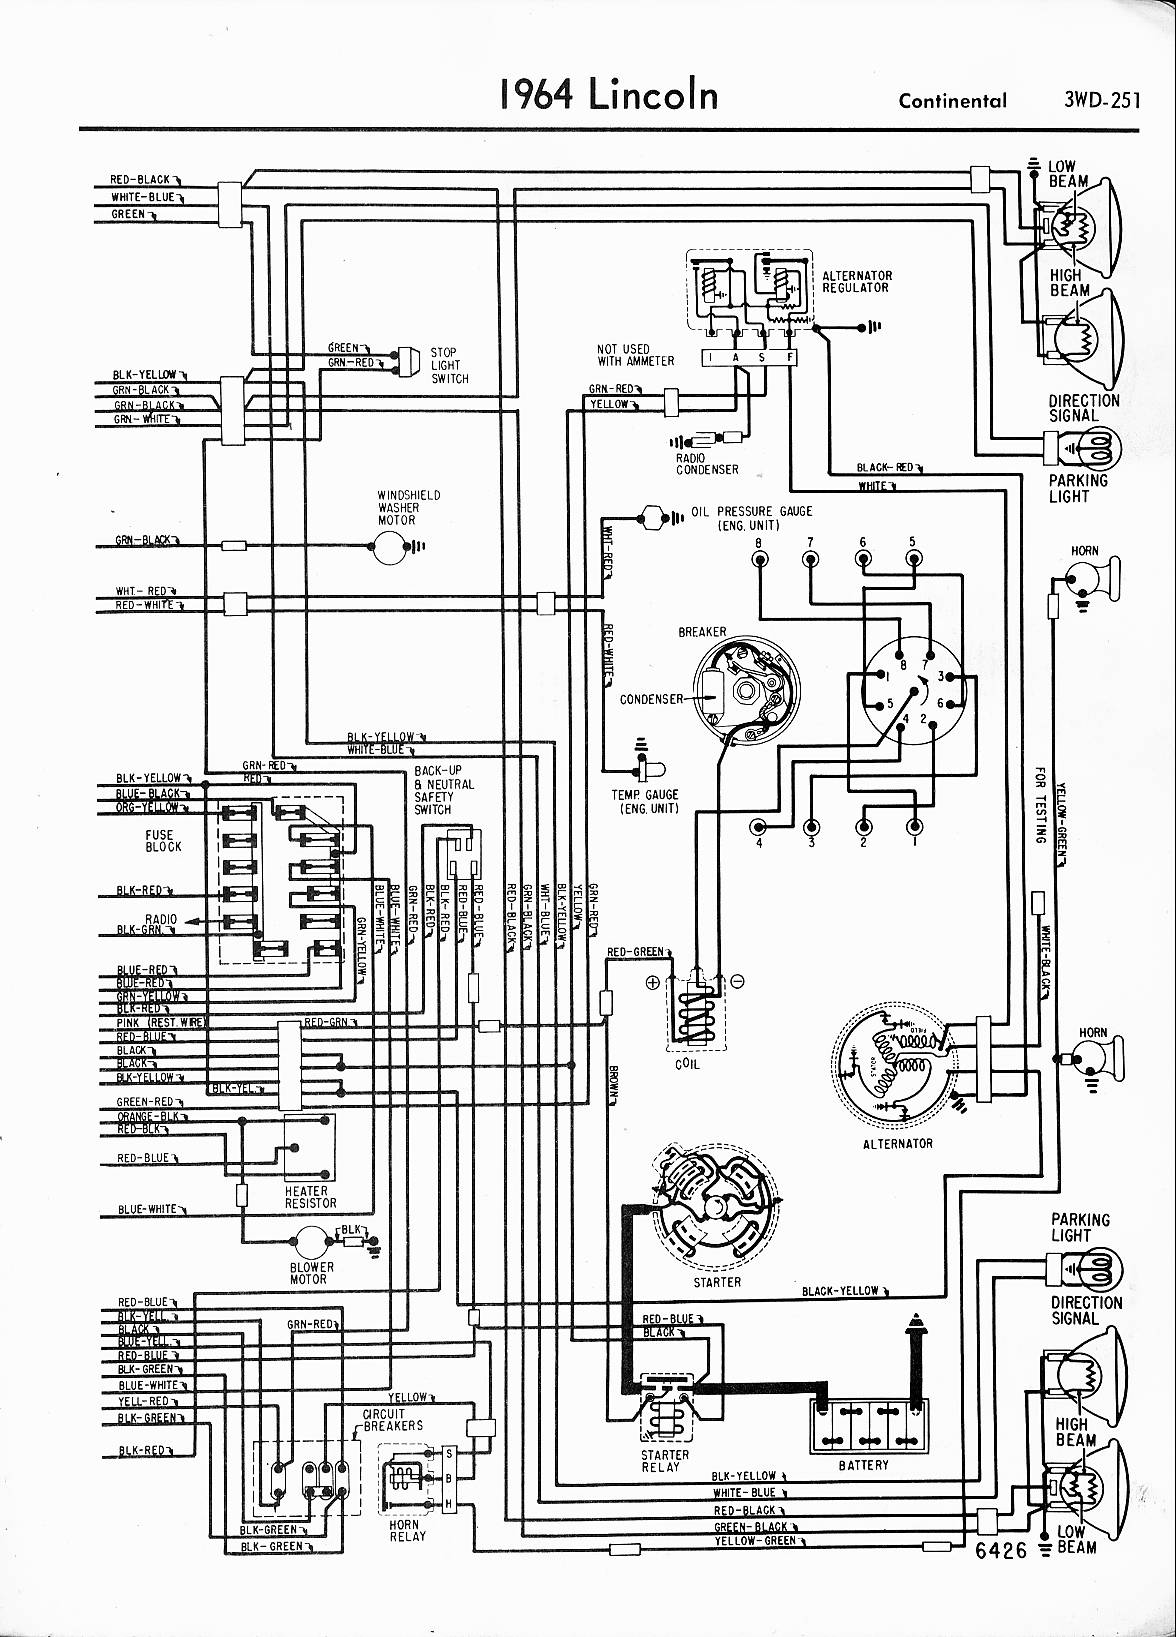 lincoln wiring diagrams 1957 19651964 lincoln right half